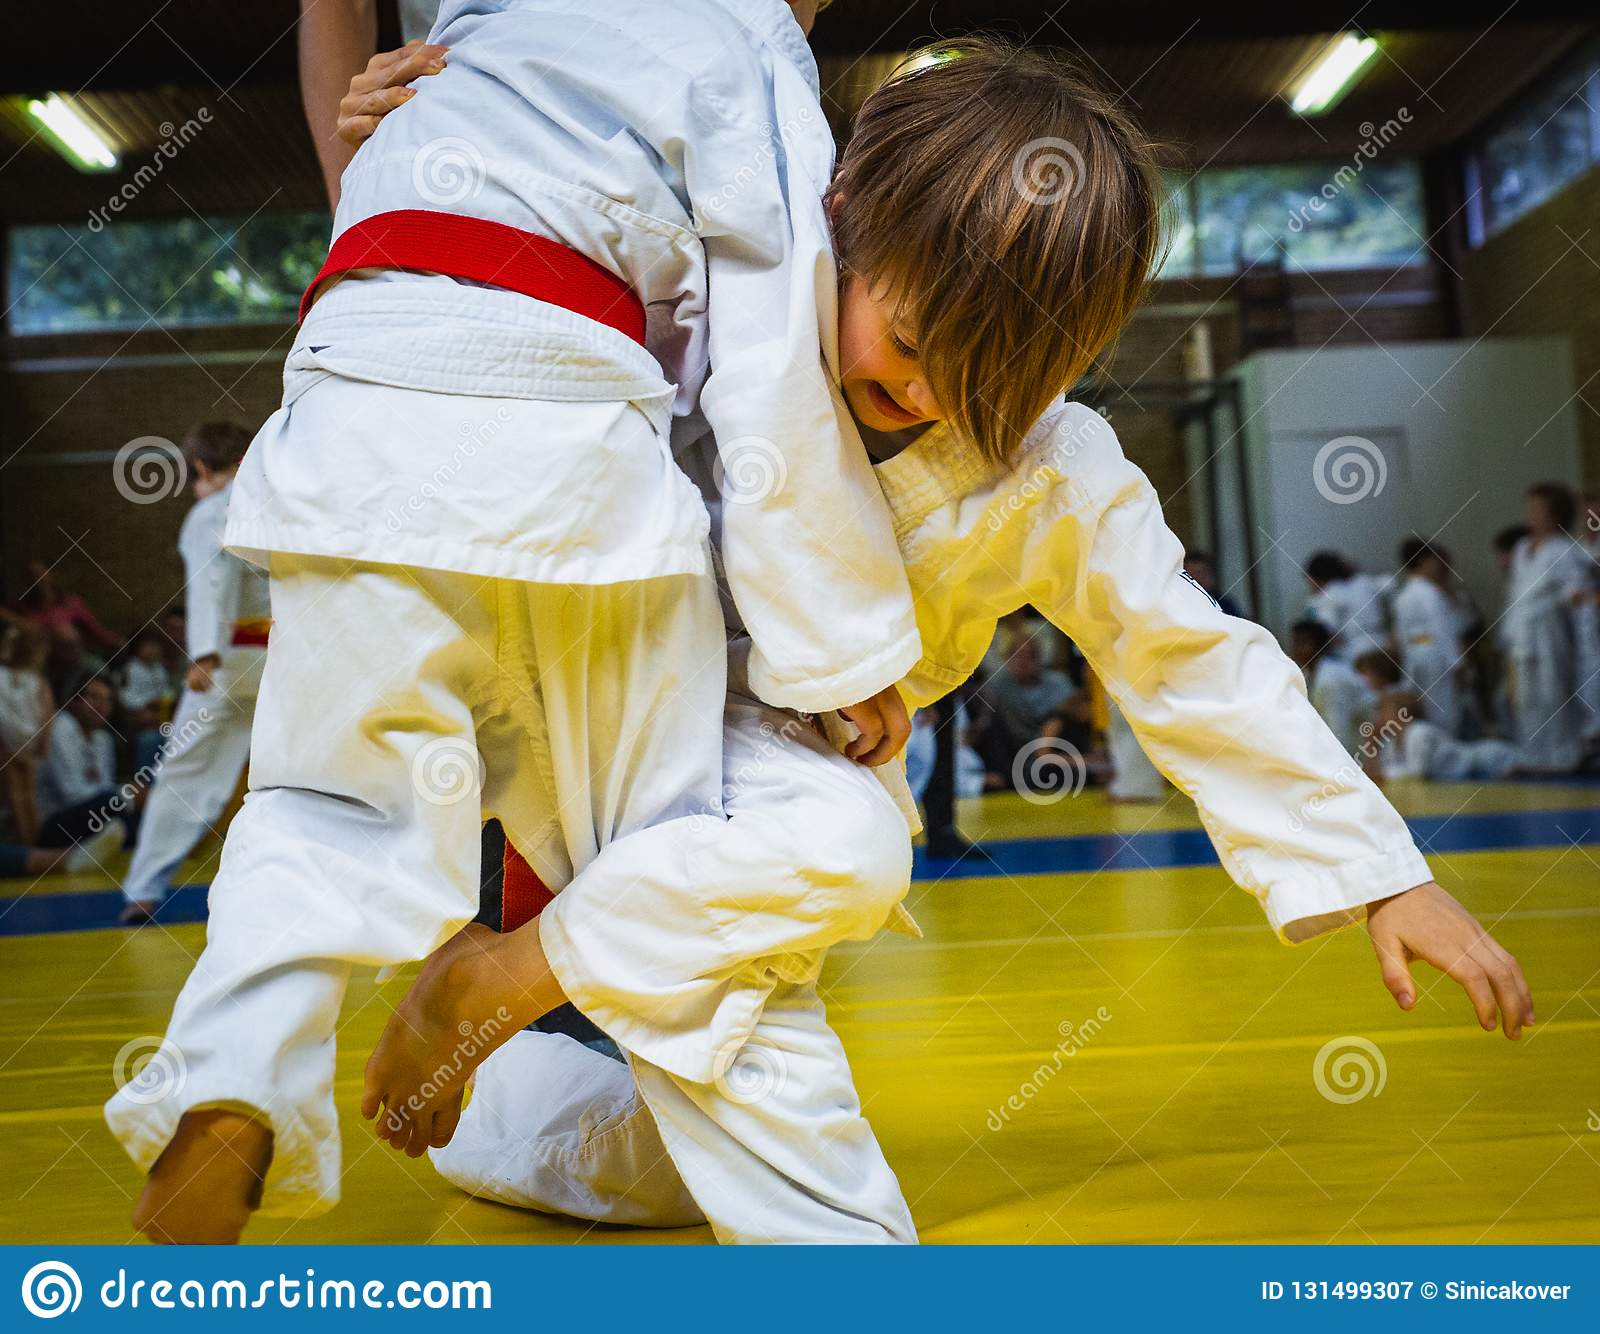 Competition At Judo School, Two Little Wrestling Boys In The